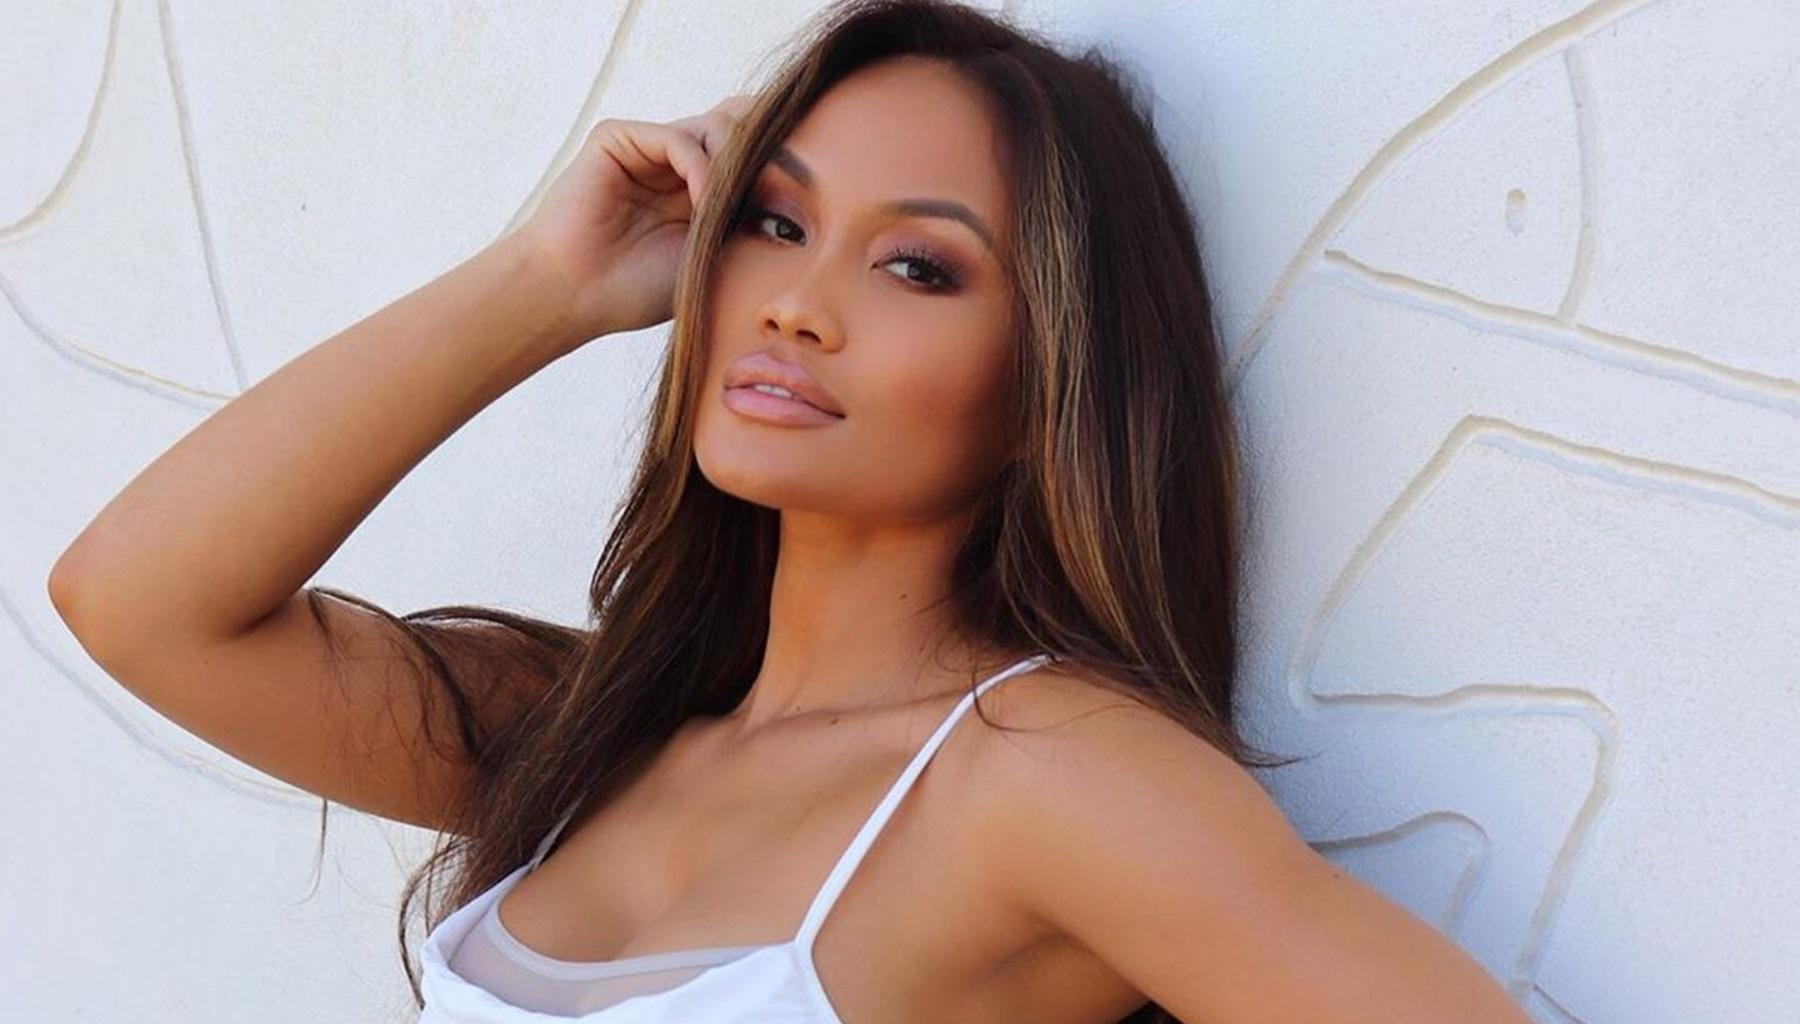 50 Cent's Baby Mama, Daphne Joy, Shares Perfect Family Photos With Their Son, Sire; What Does The Rapper's GF, Cuban Link, Think Of This?